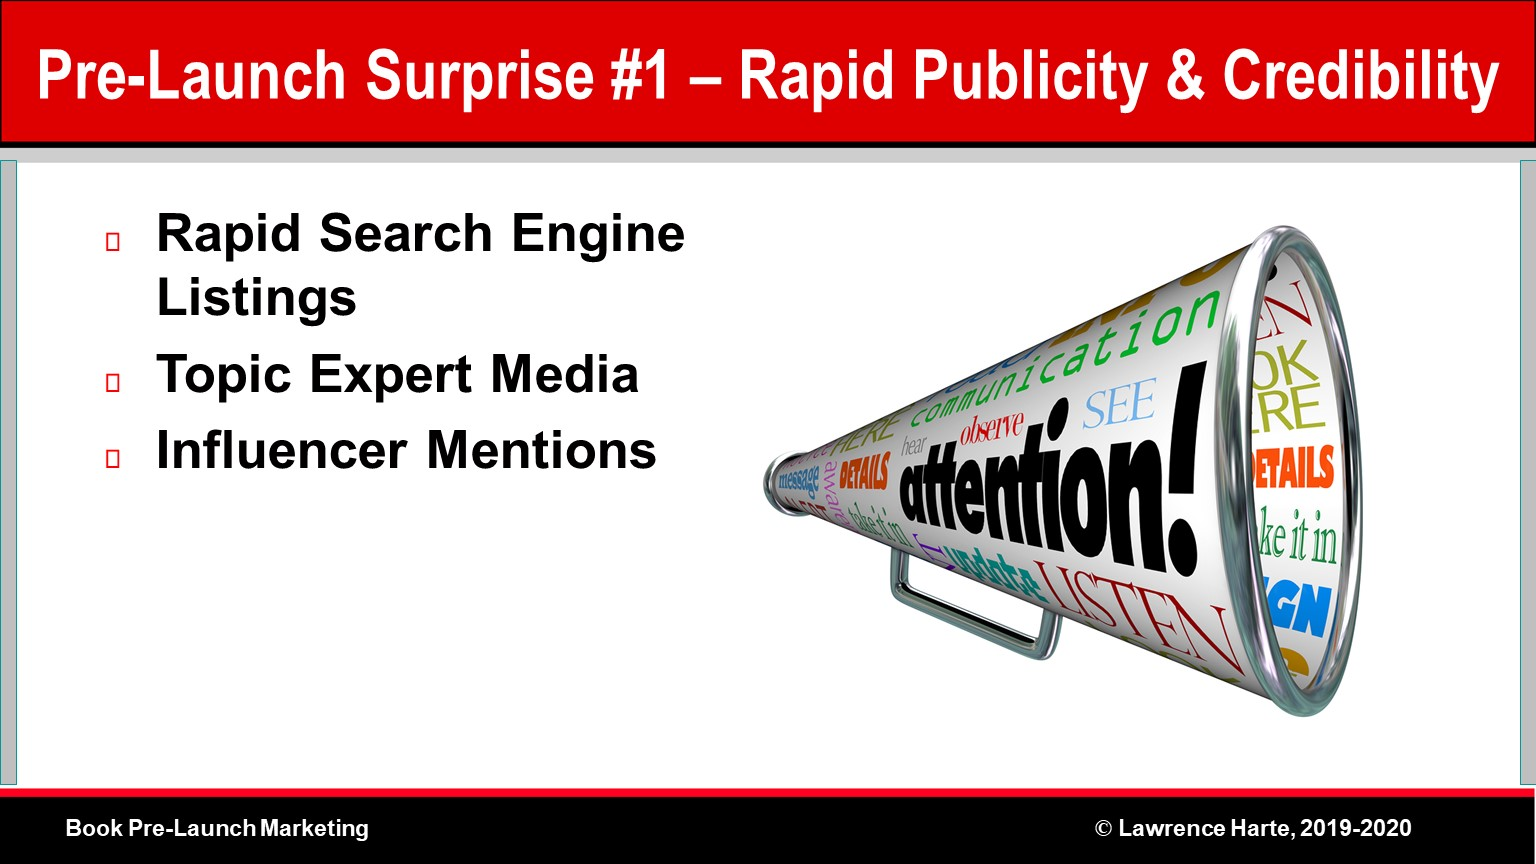 Book Pre-Launch Marketing Rapid Publicity and Credibility